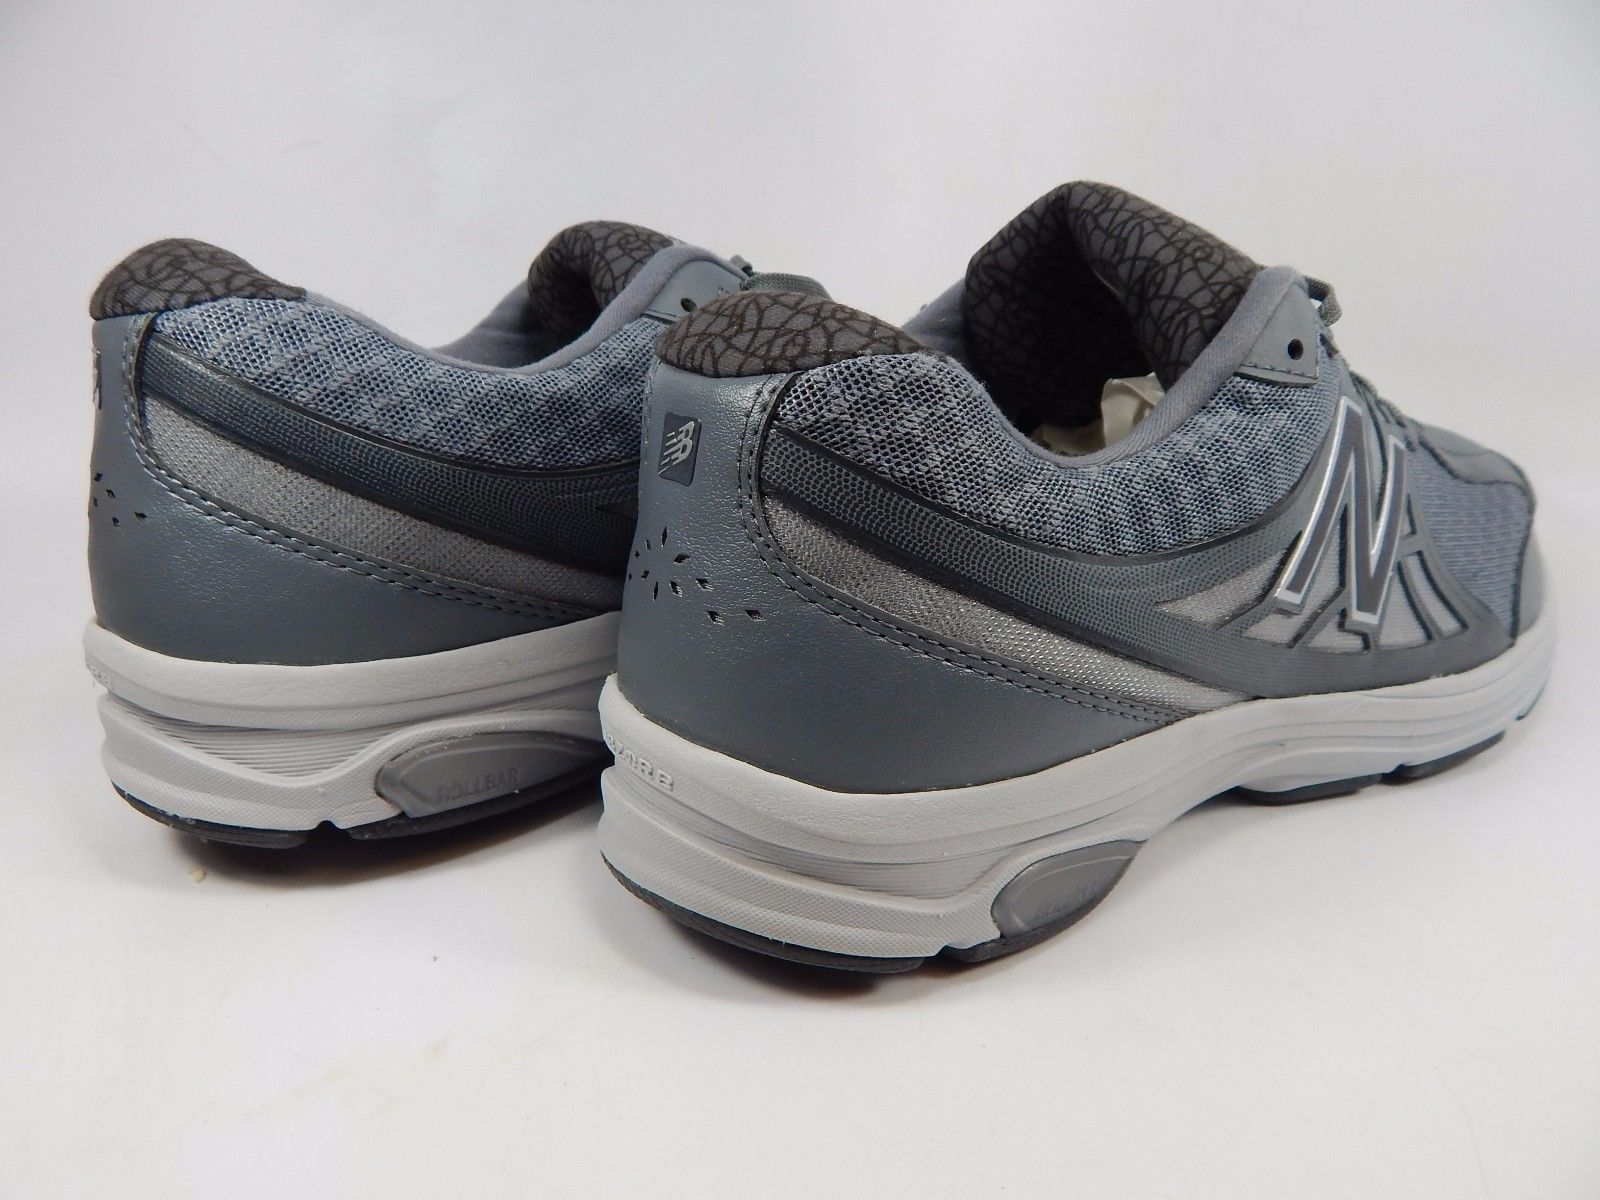 new balance womens walking shoes 847